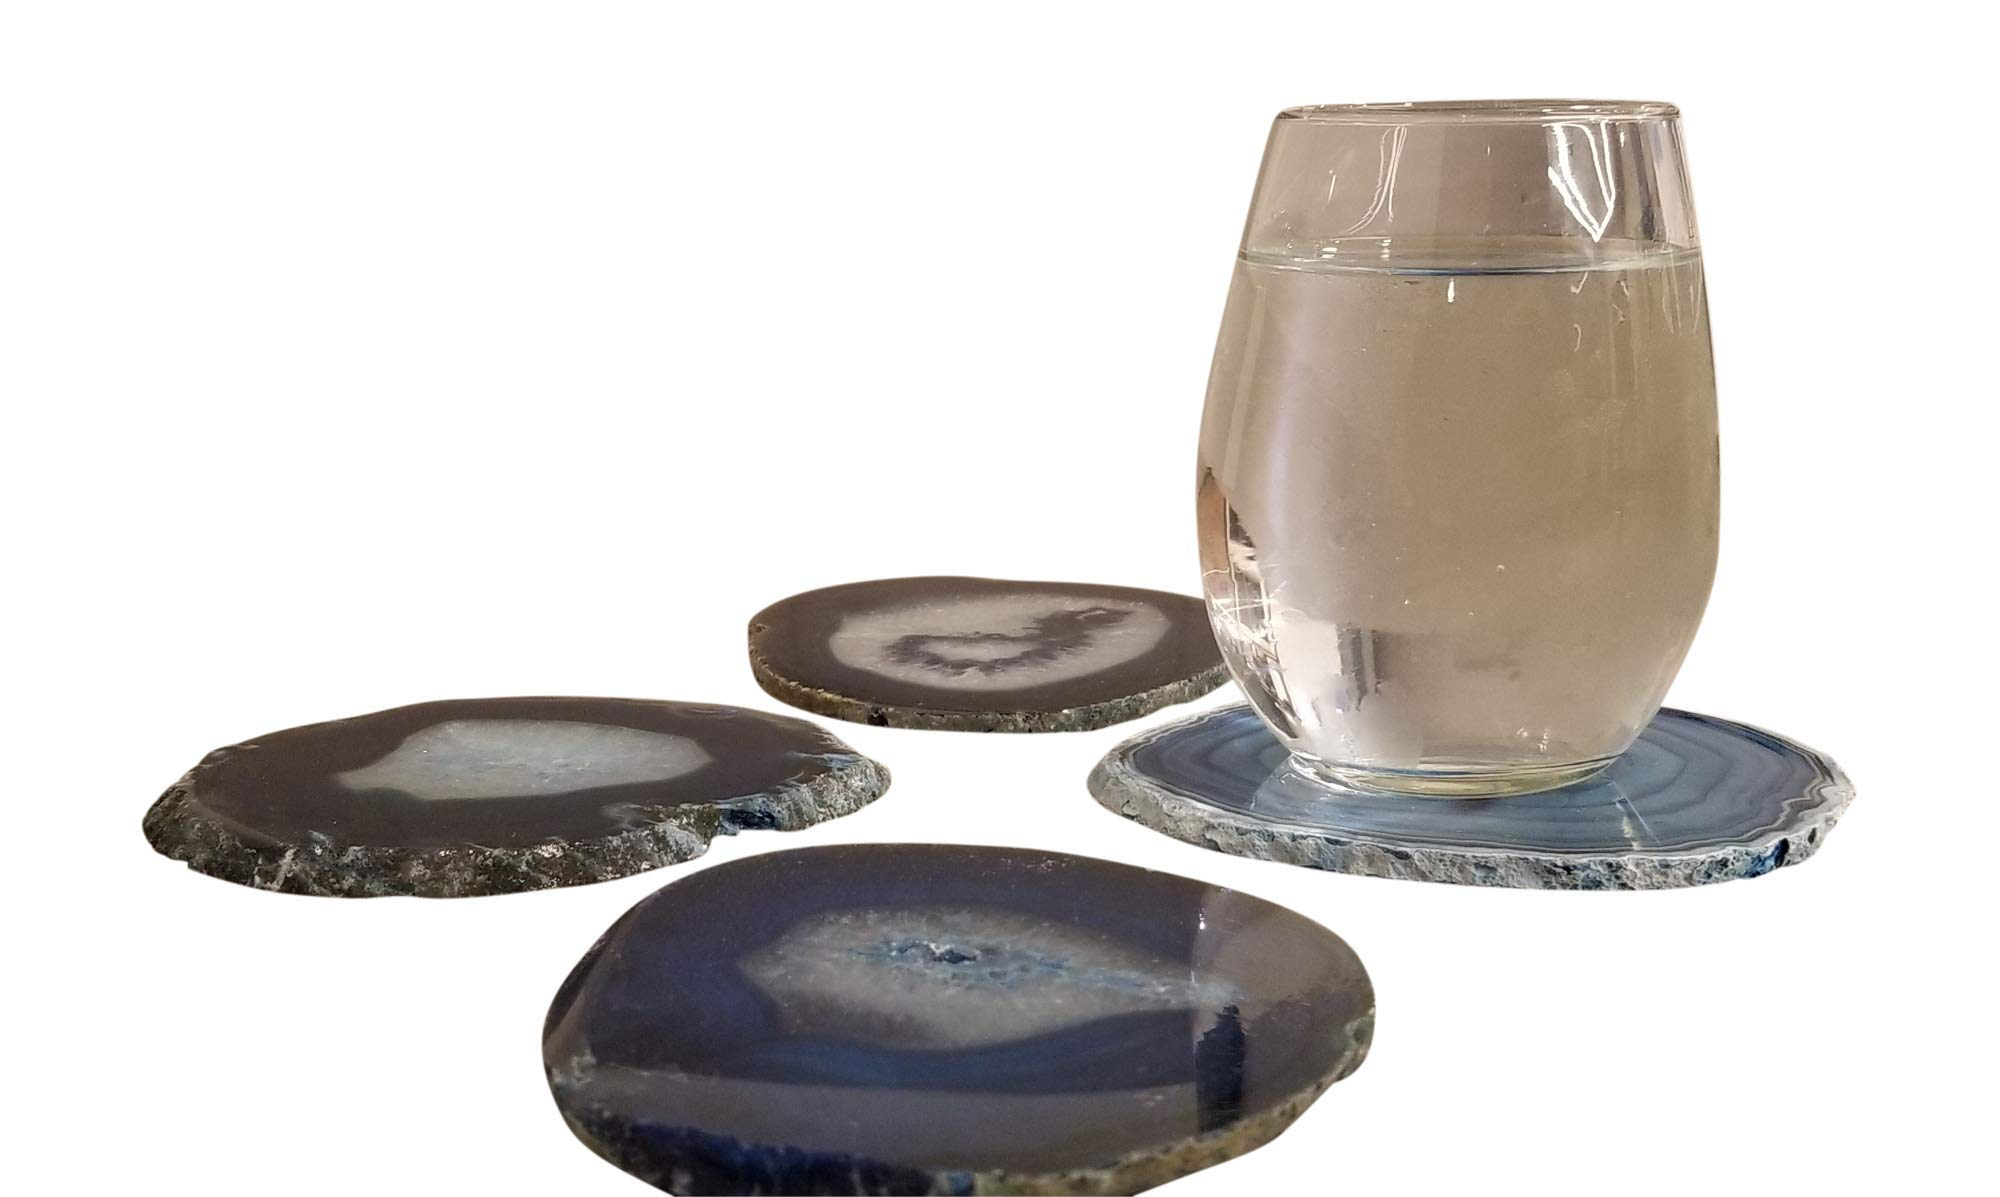 Natural Brazilian Agate Stone Coasters, Bookends and Wind Chimes Set, Incl 4 Large Coasters 4''-5'', 1 Pair of Bookends 2-3 lbs and Wind Chimes, Free Microfiber Polishing Cloth and 2 Mugs (blue) by Enchanted Dwelling (Image #4)